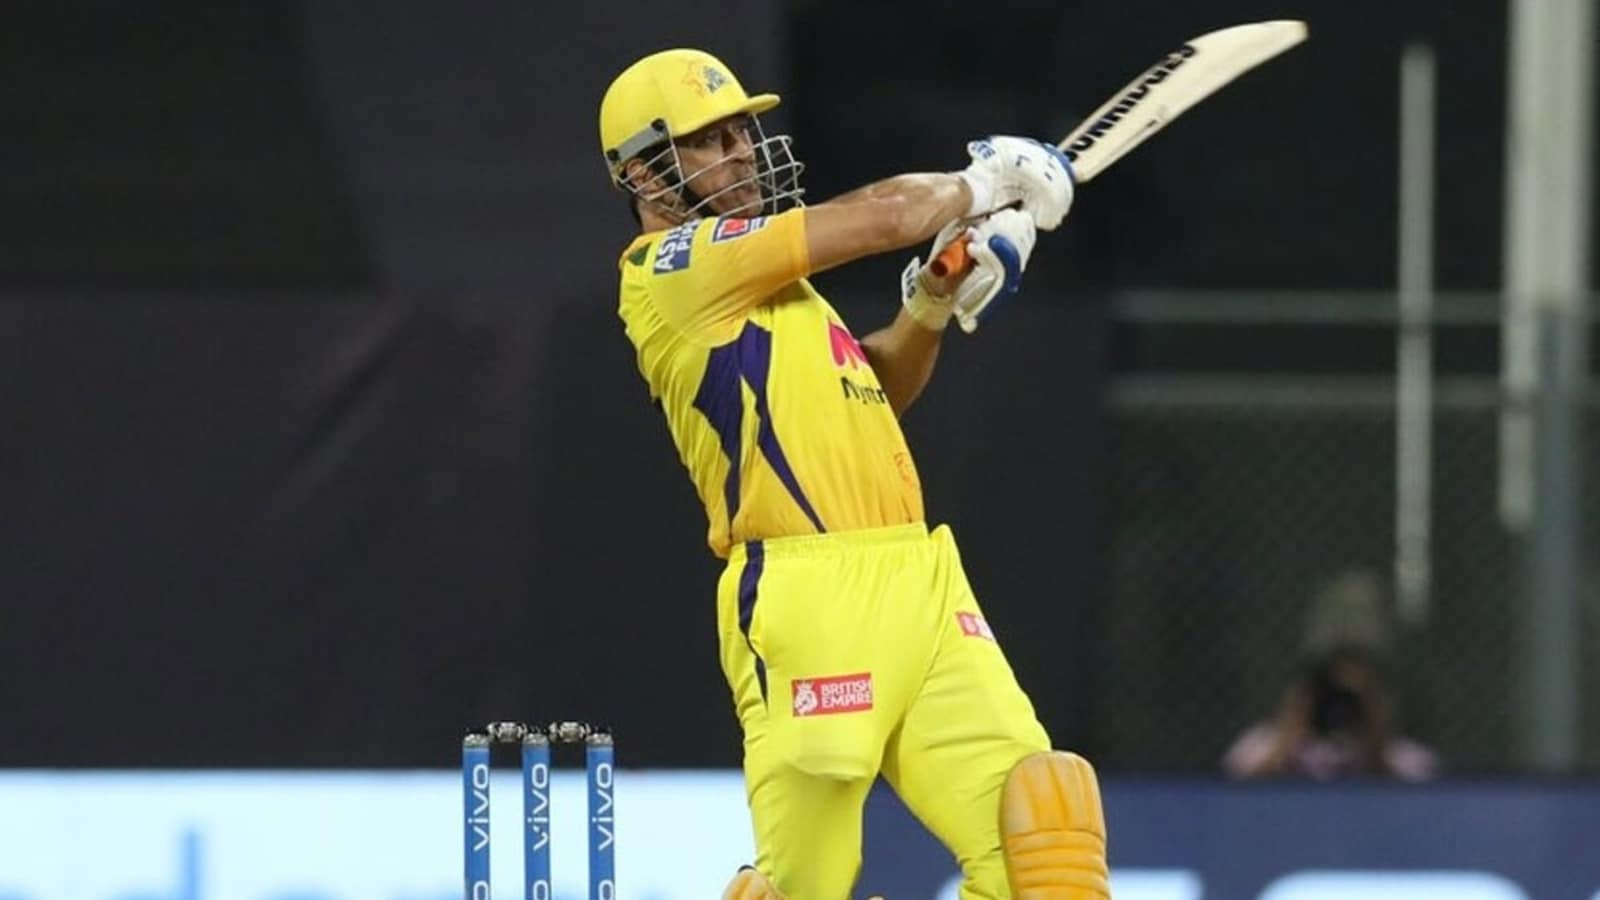 'That's what he did with that cameo': Sunil Gavaskar expects 'more four and six' from MS Dhoni as 2021 IPL progresses